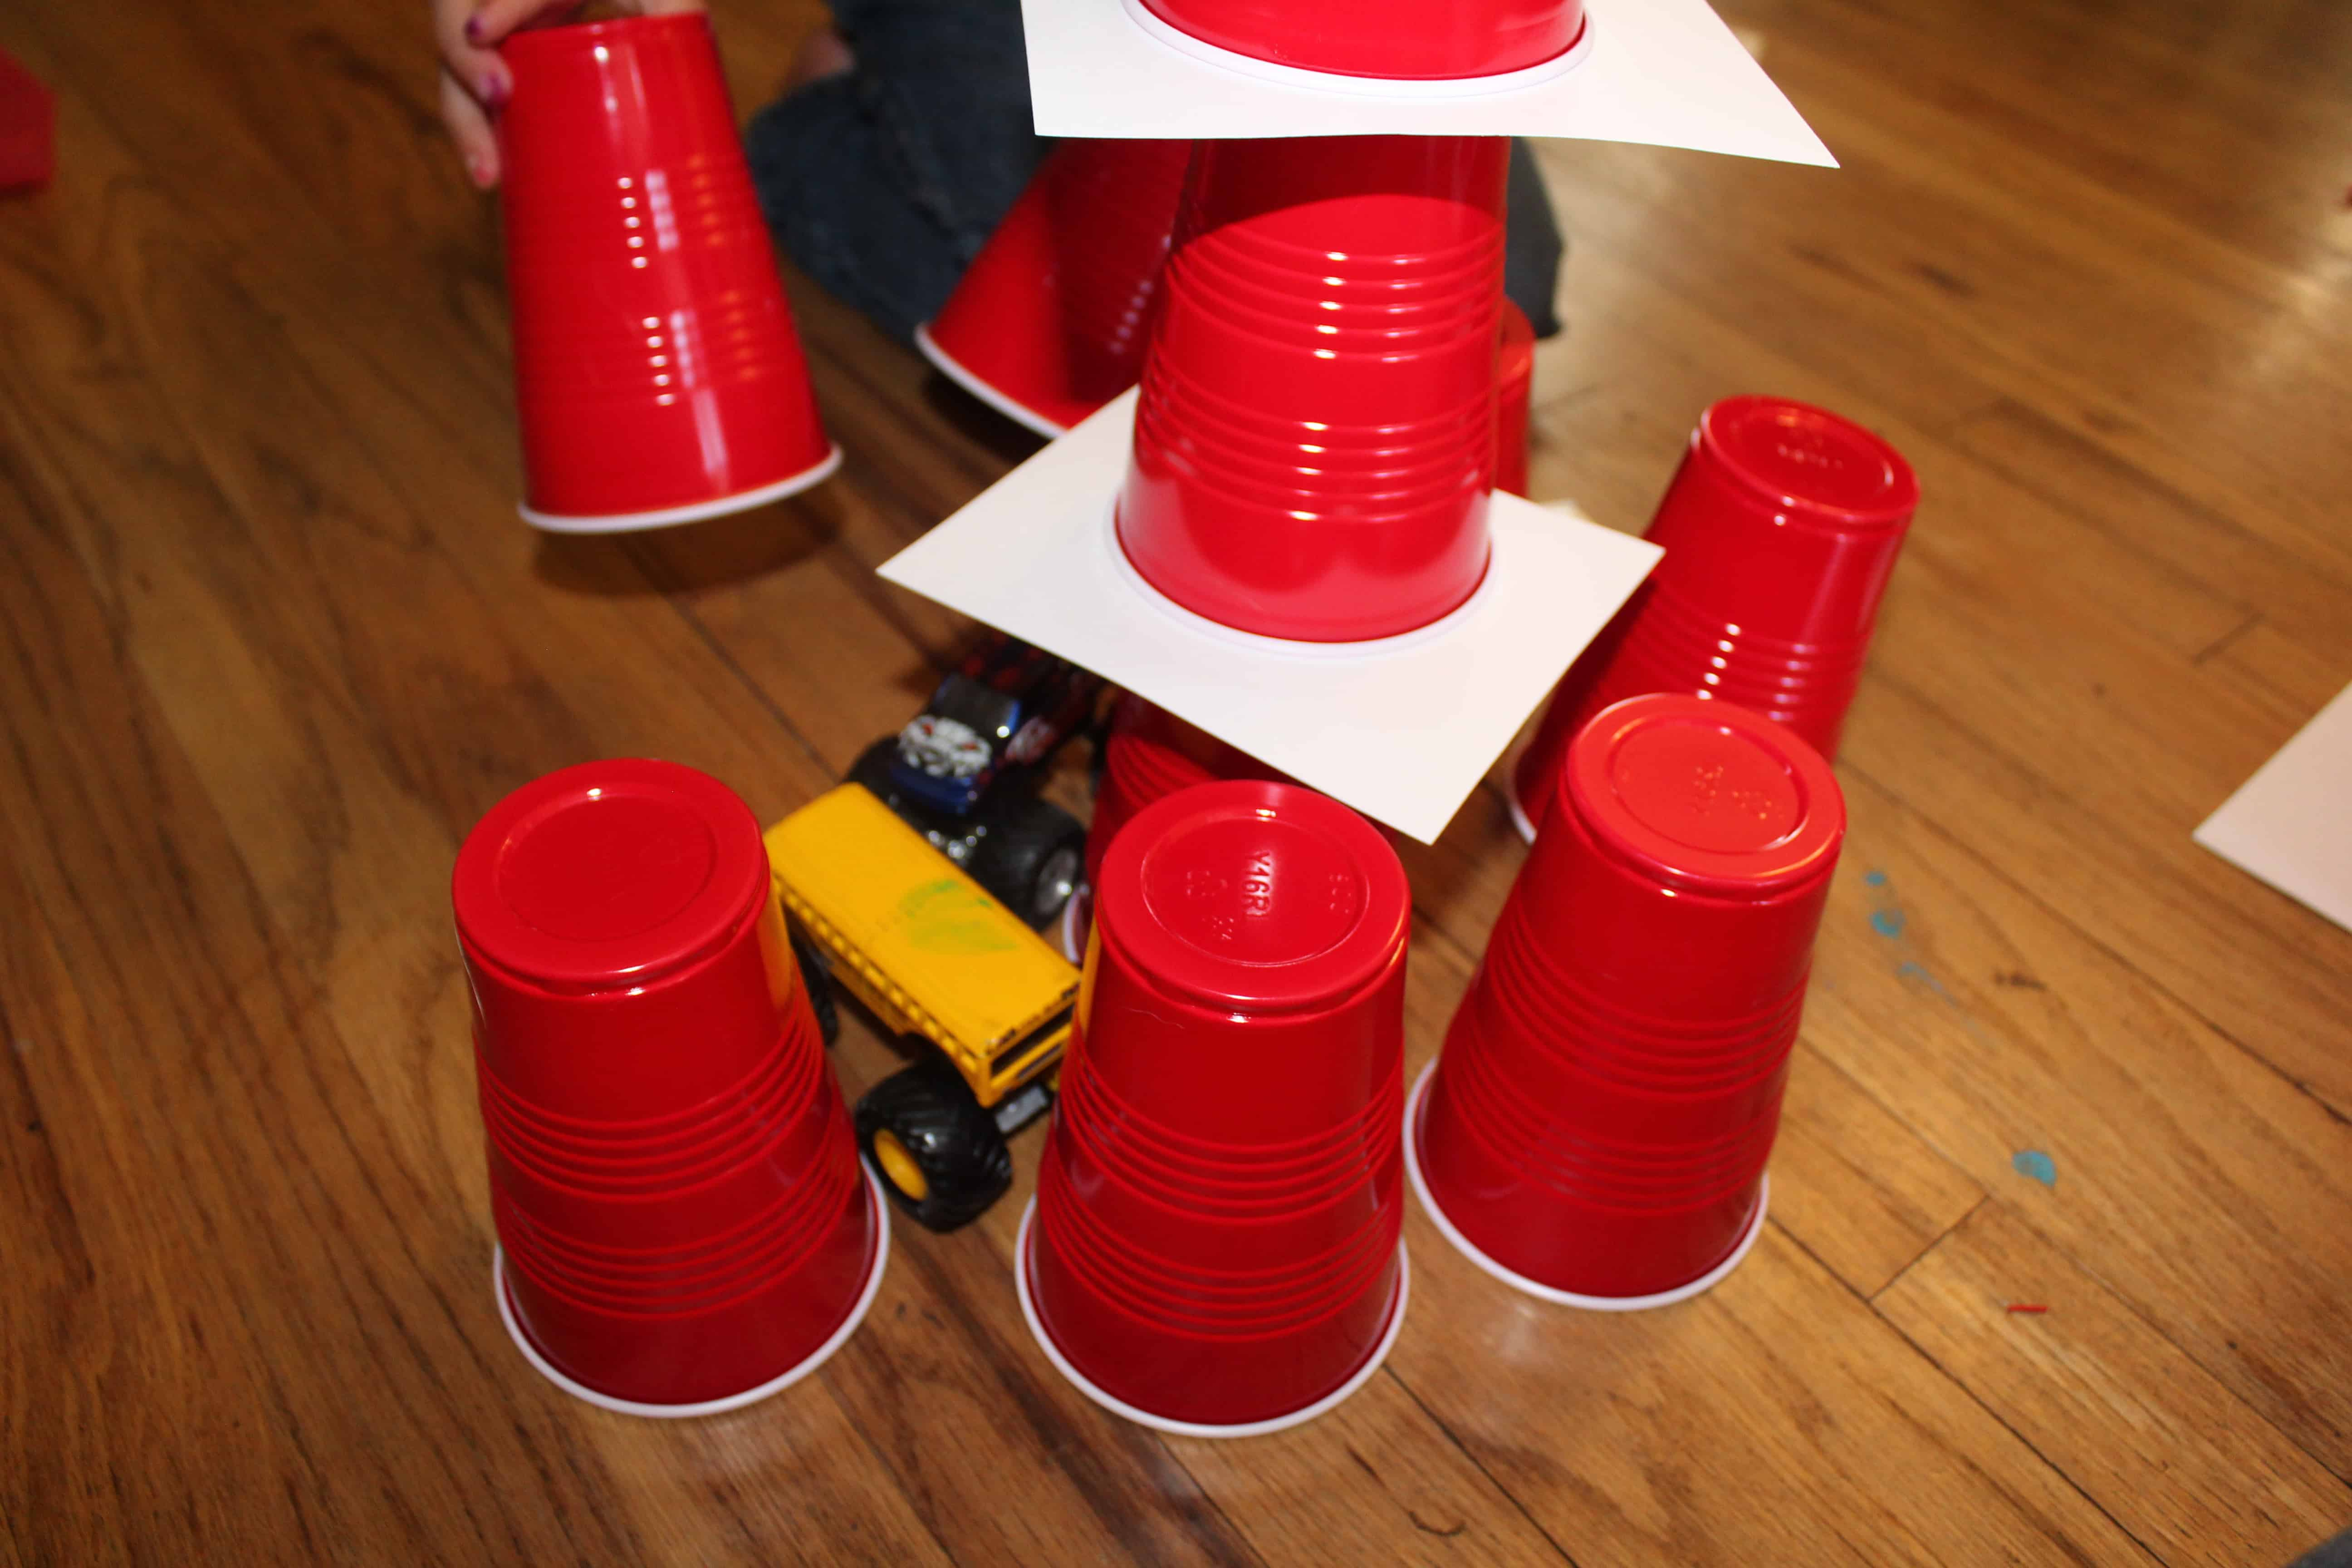 preschooler building with solo cups and trucks